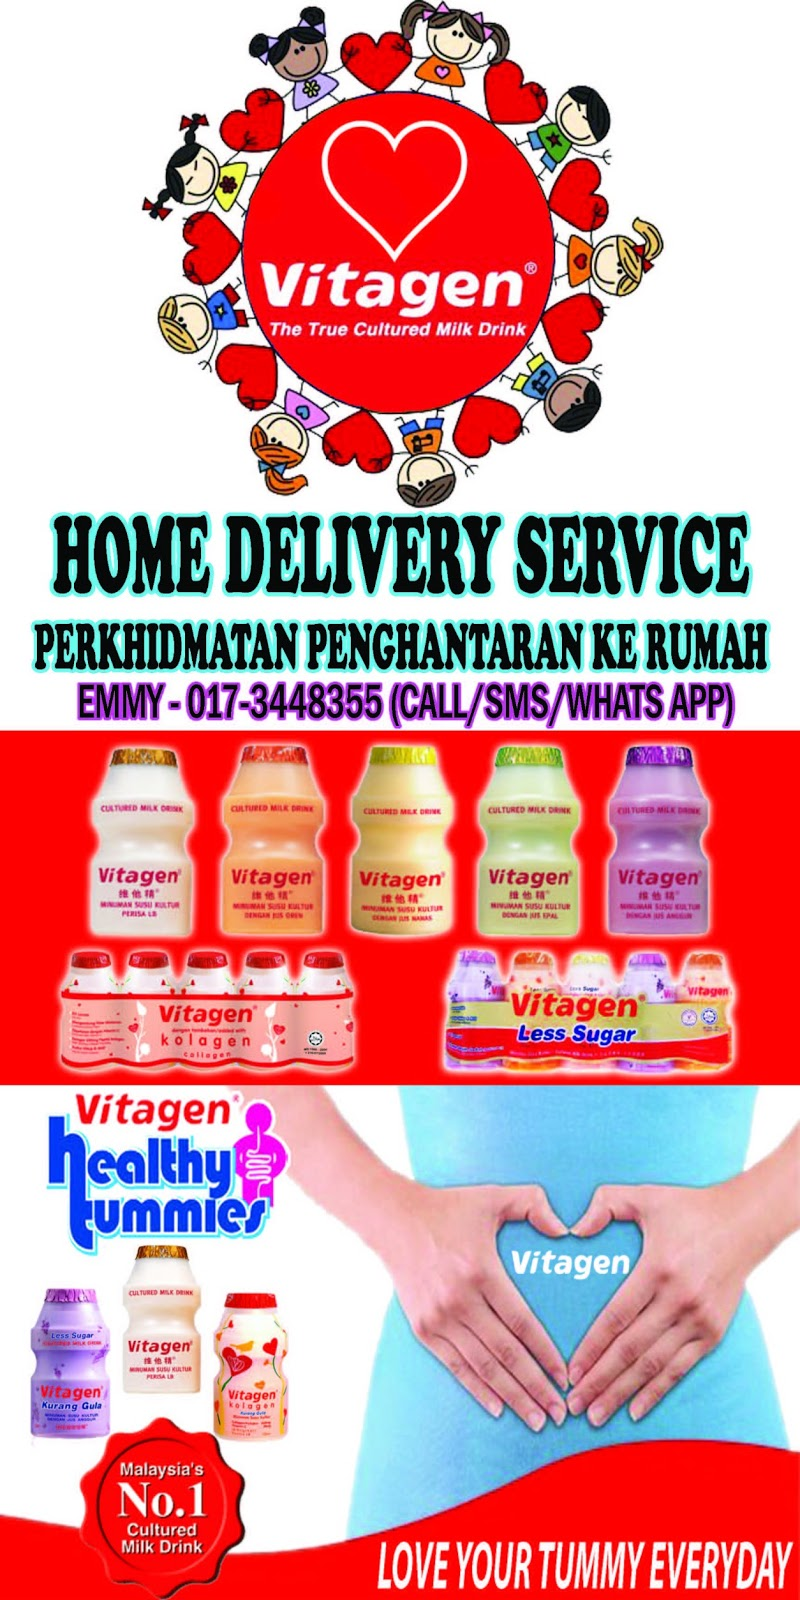 Vitagen Home Delivery Service